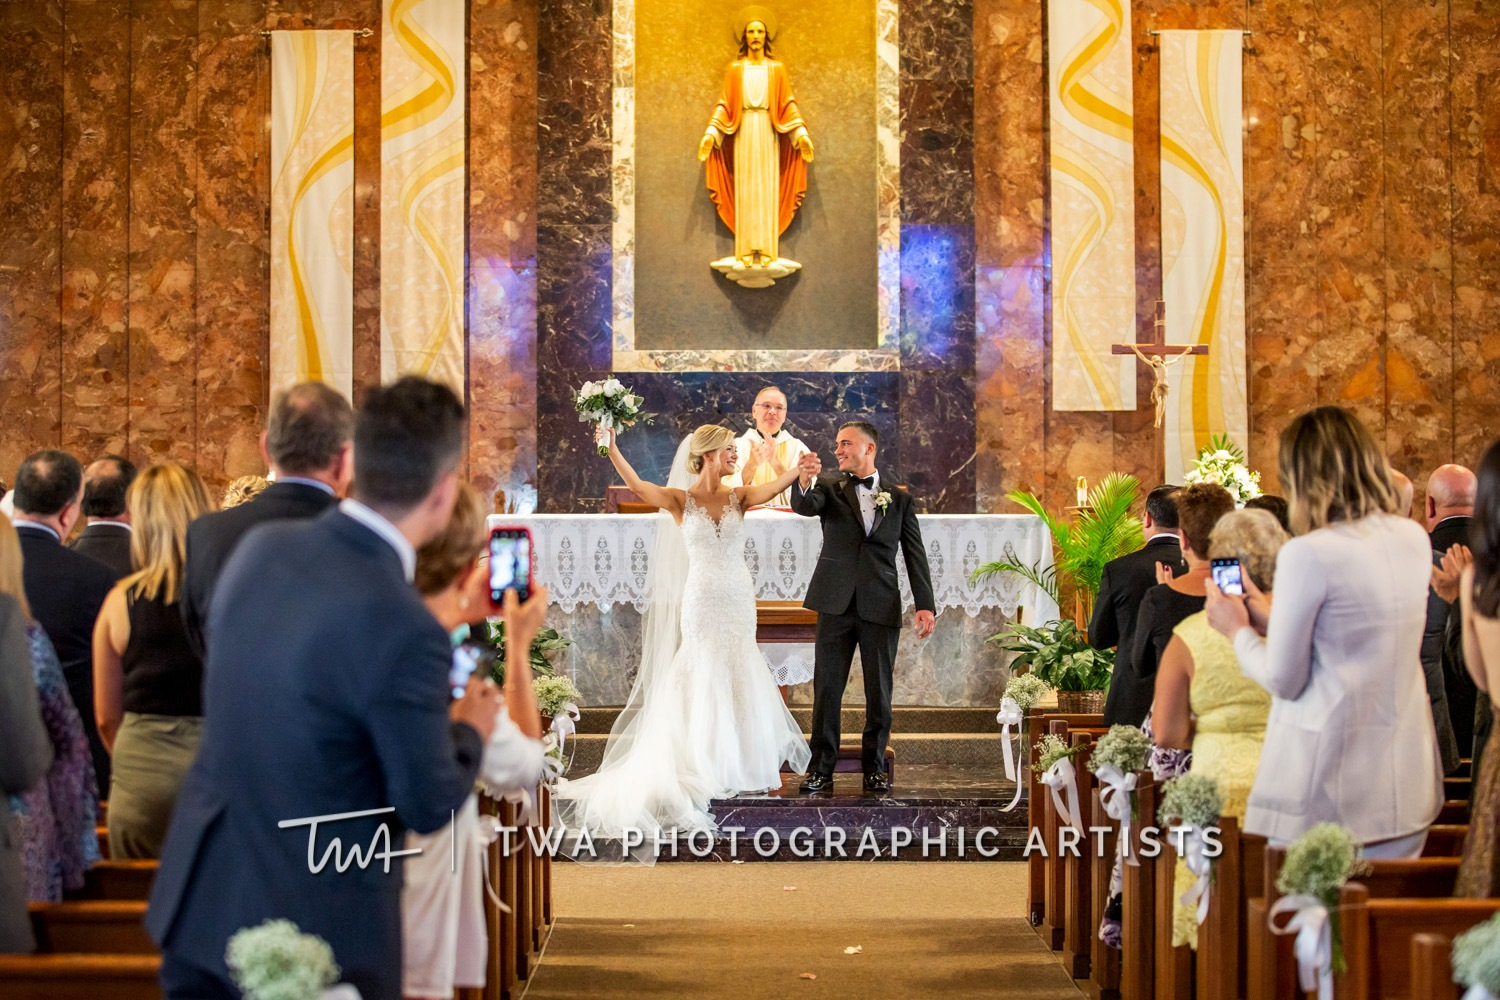 Chicago-Wedding-Photographer-TWA-Photographic-Artists-Ravisloe-CC_Steele_Zenere_JM_MP-0194